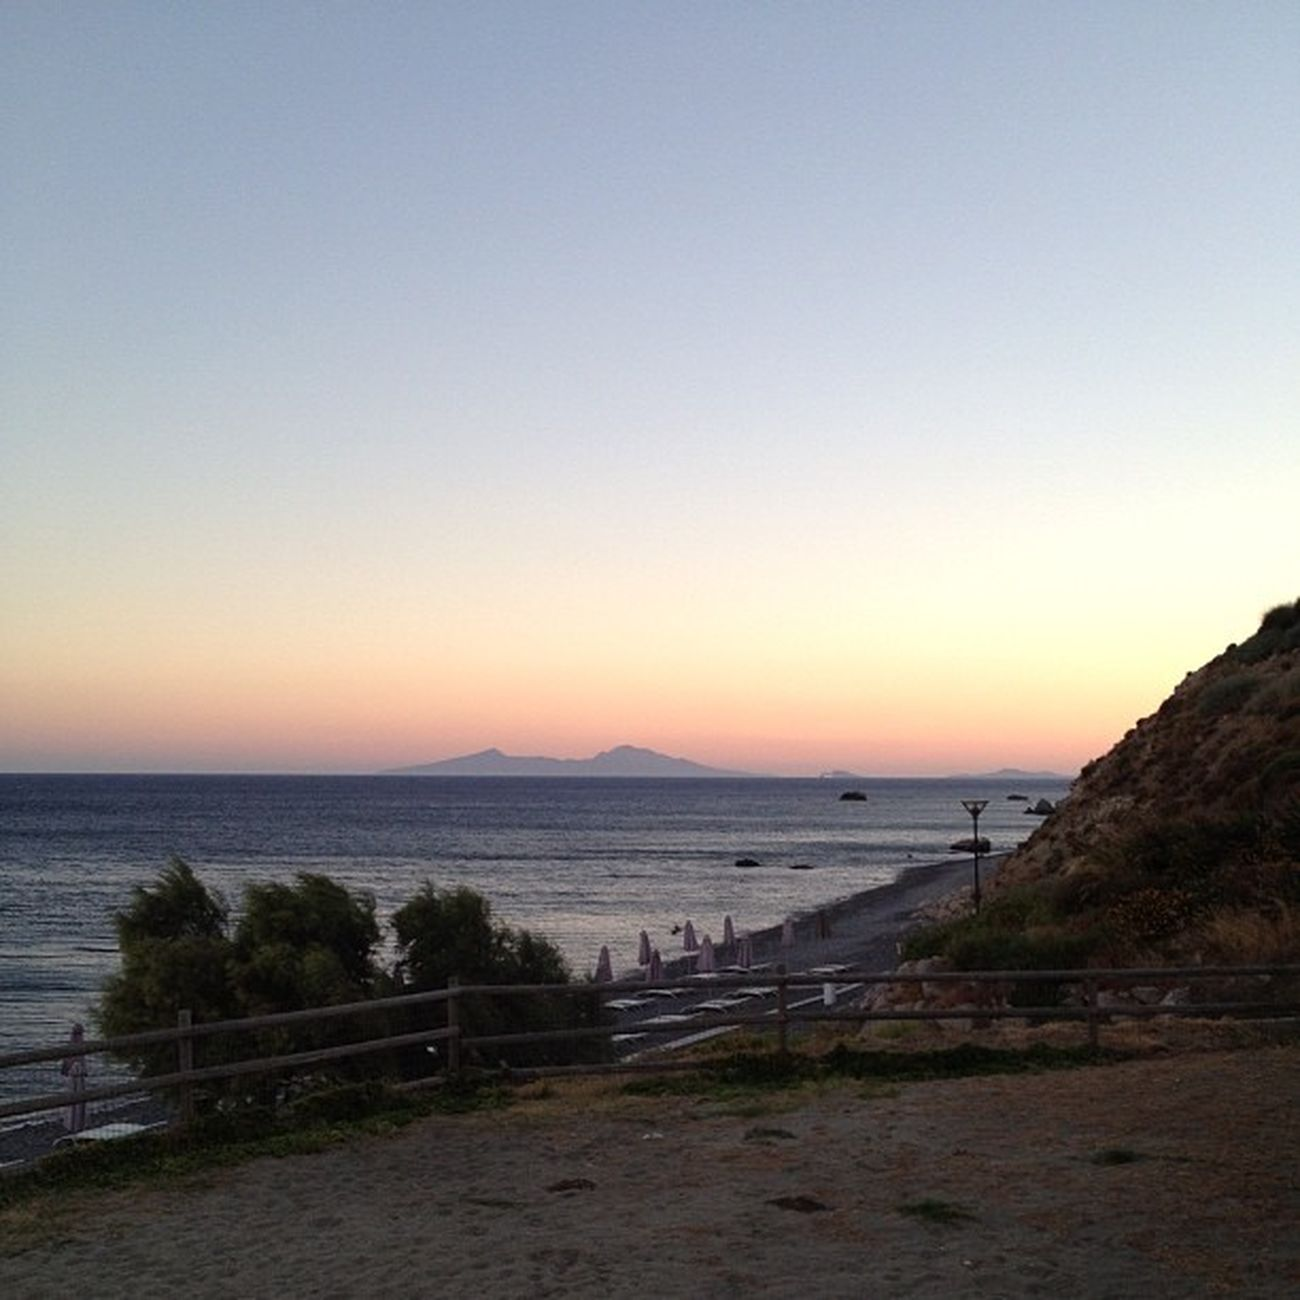 Greece Kos Agiosfokas Sea beach sunset skyline trees beach paradise meer water sky blue stones cool nice wonderful holiday